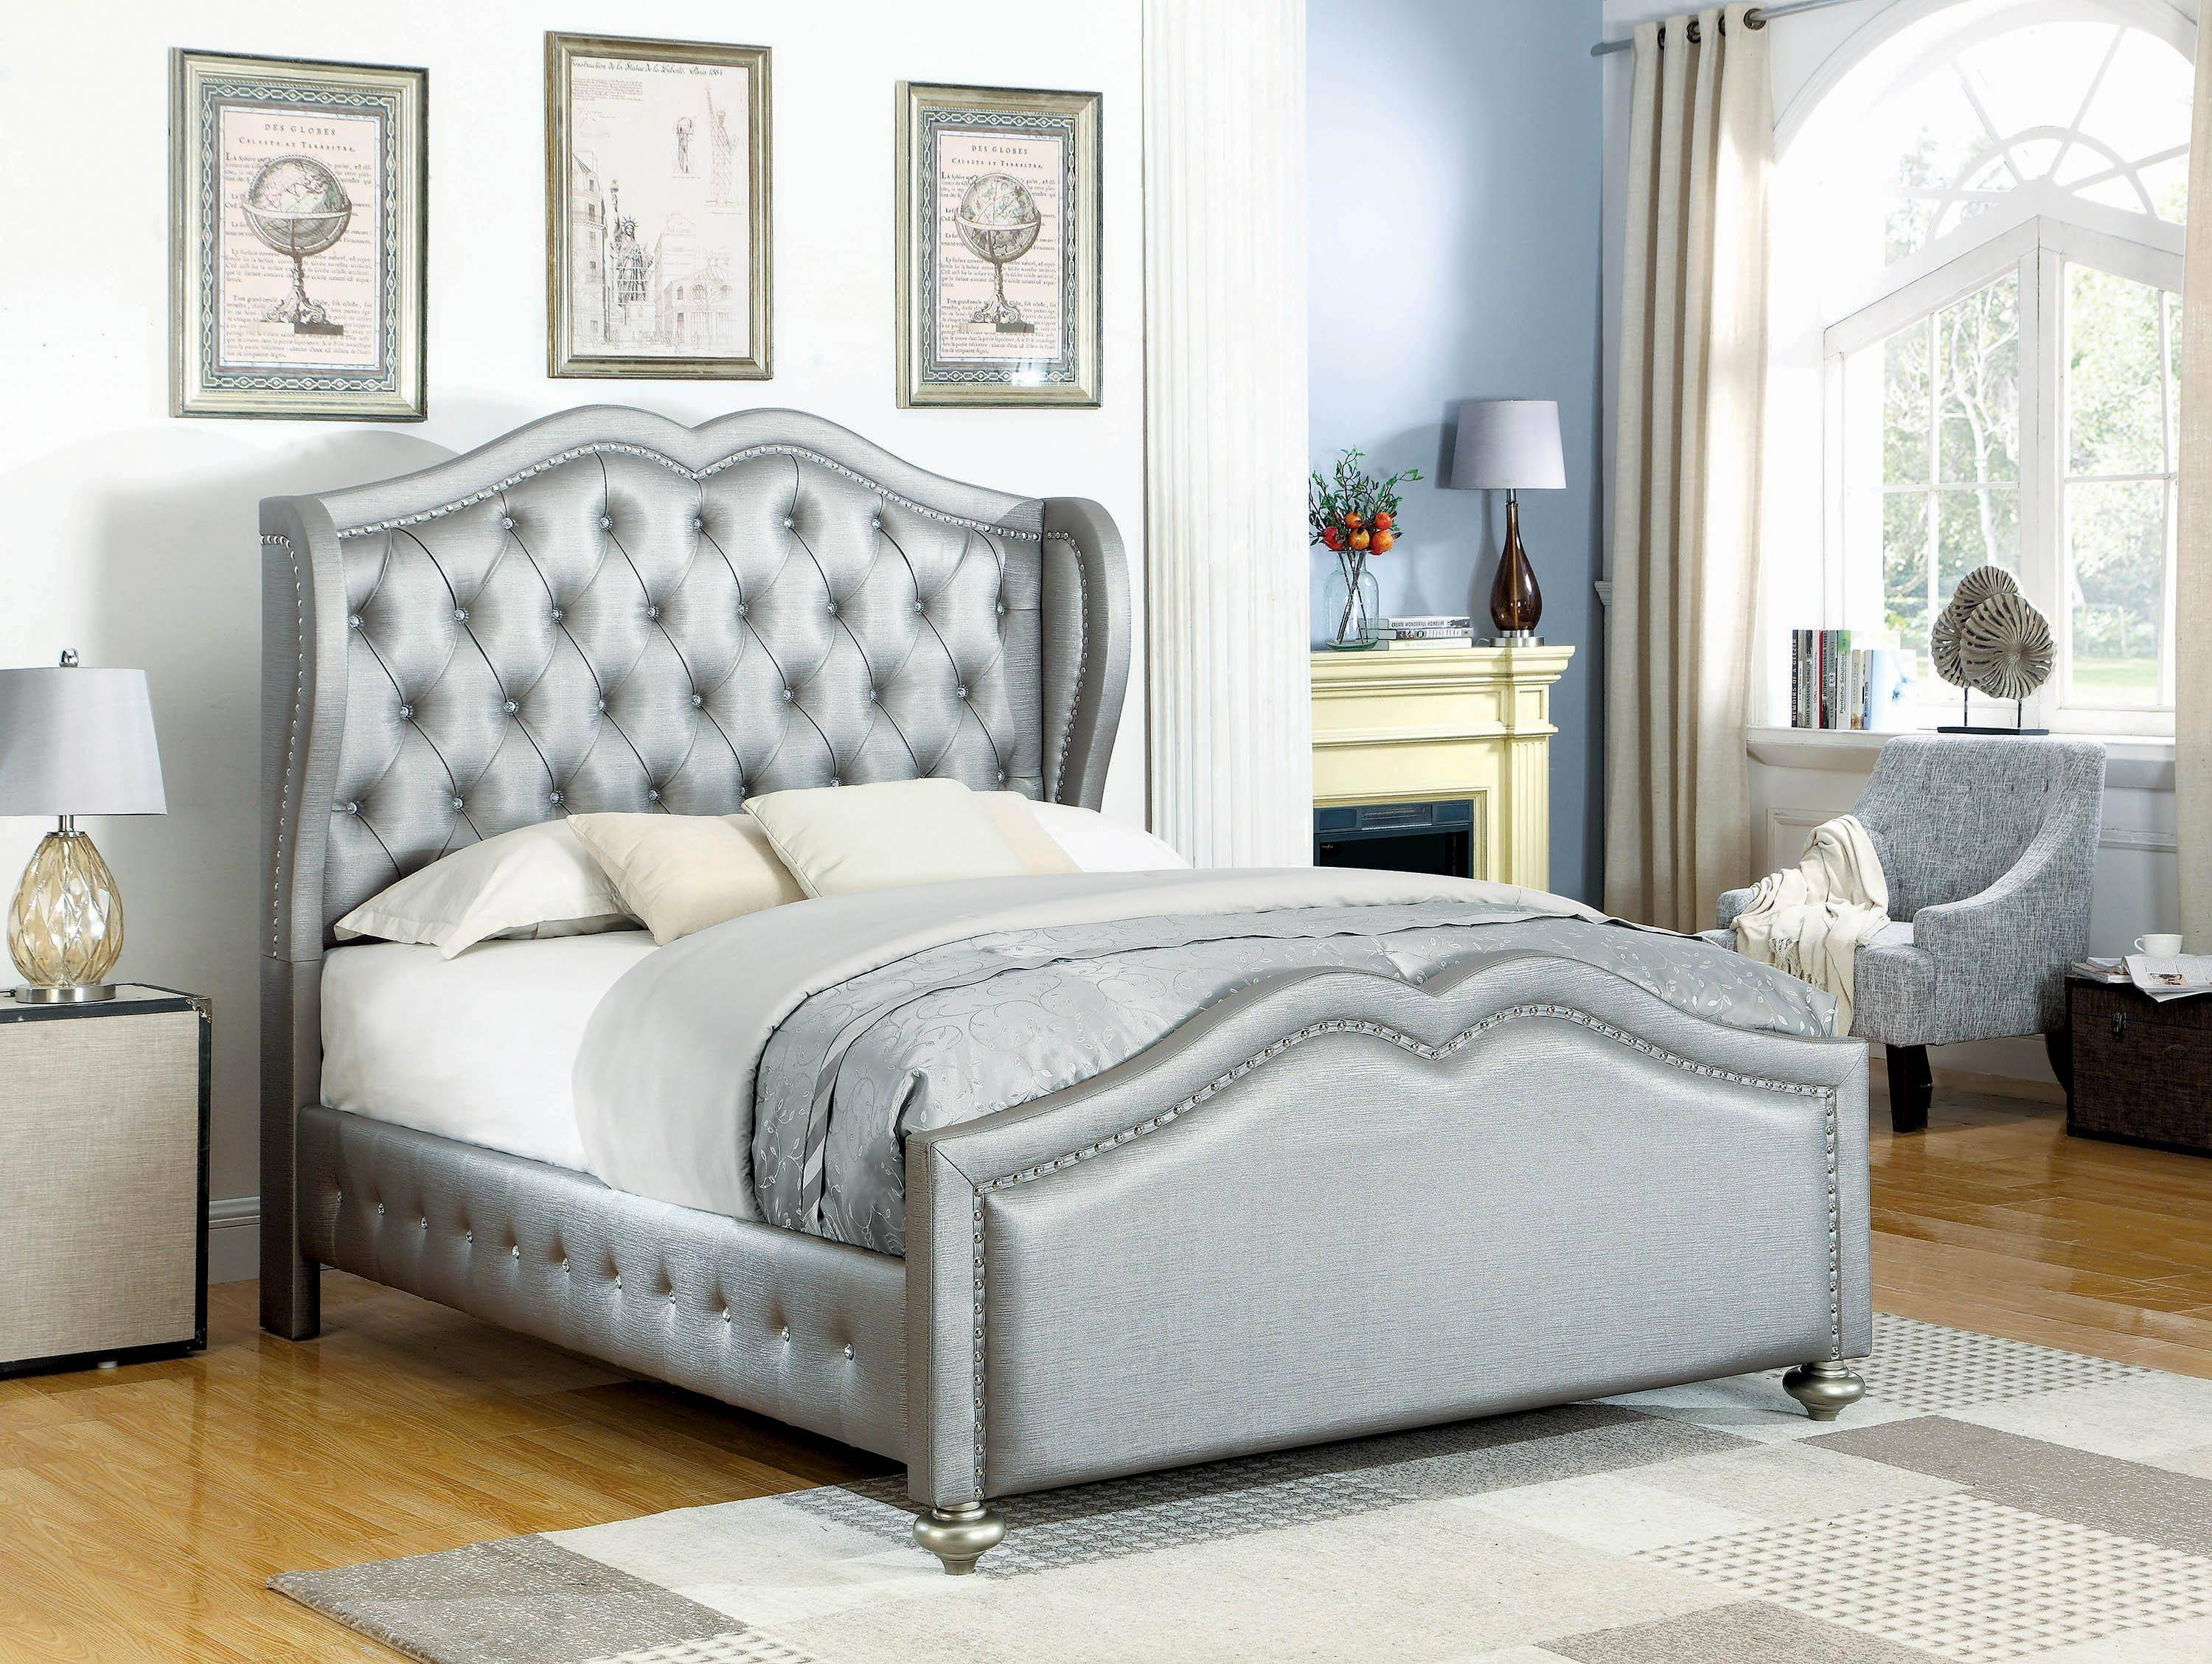 game bed frame buy a